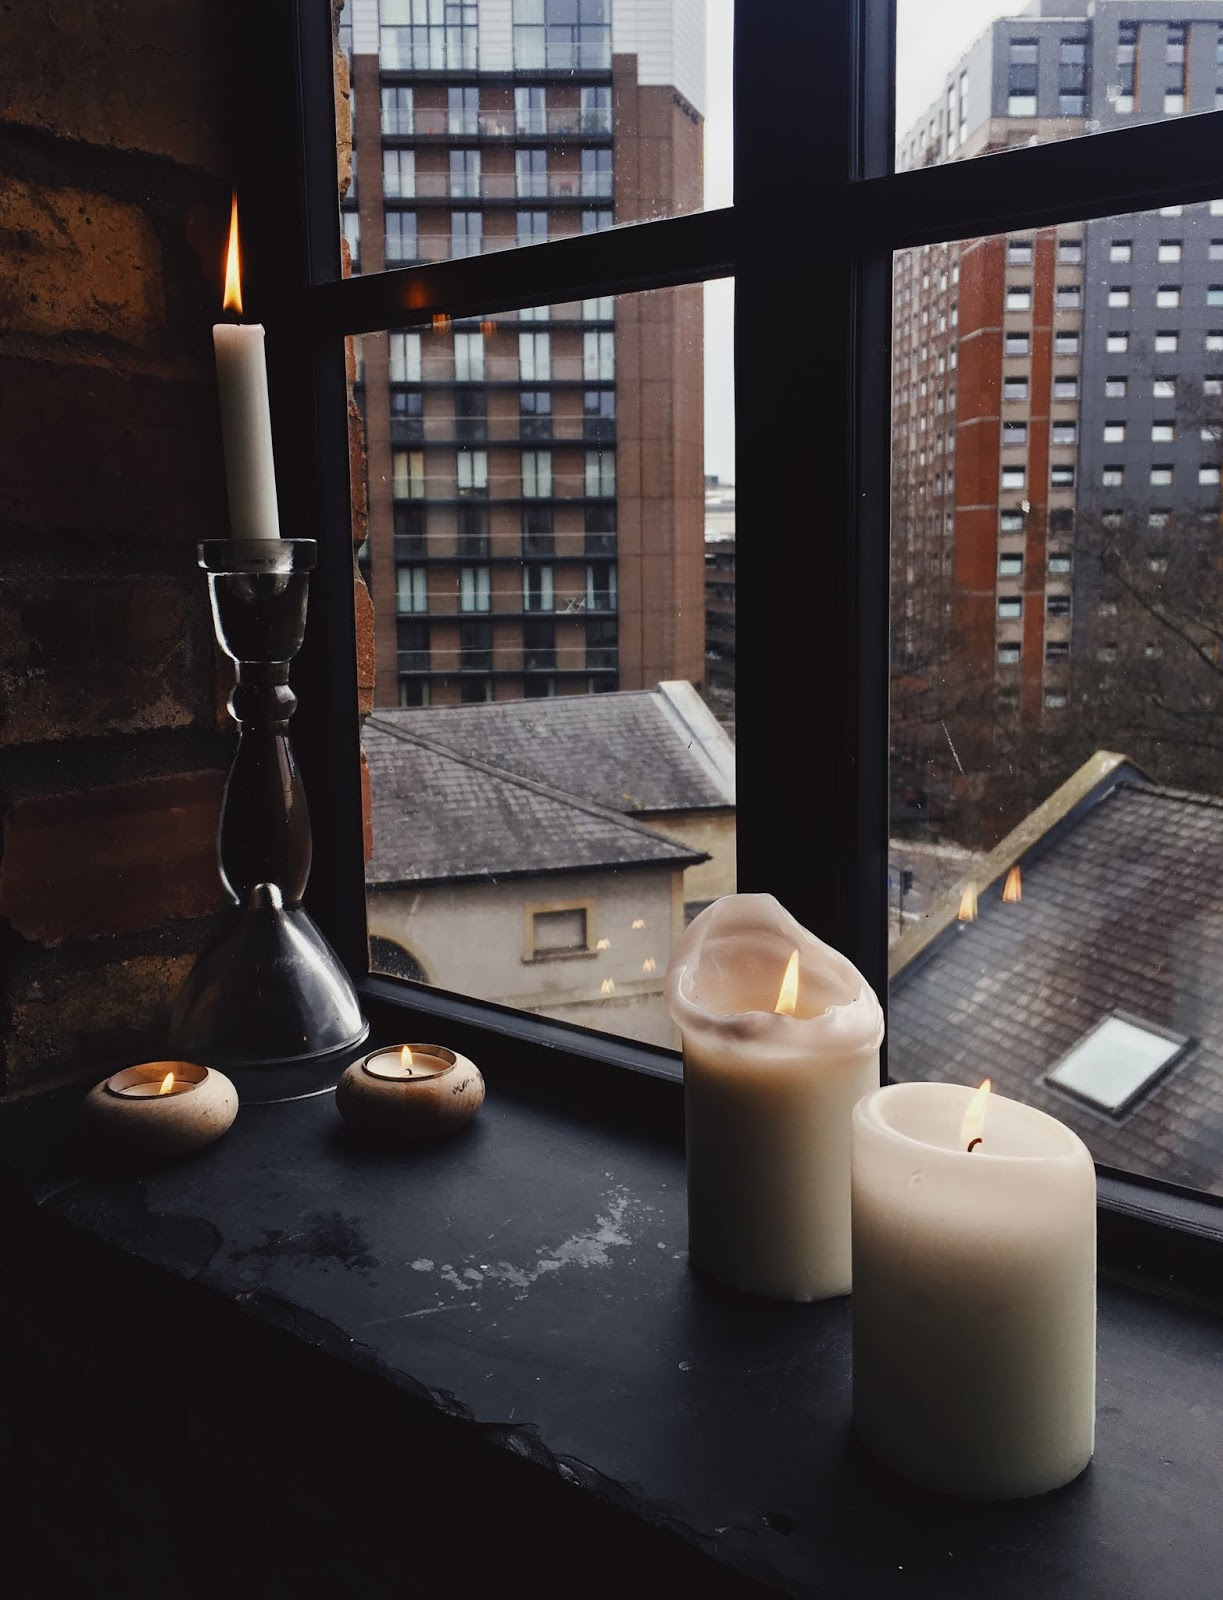 Yoga Brunch Club at The Forge Colton Yard Bristol candles on windowsill